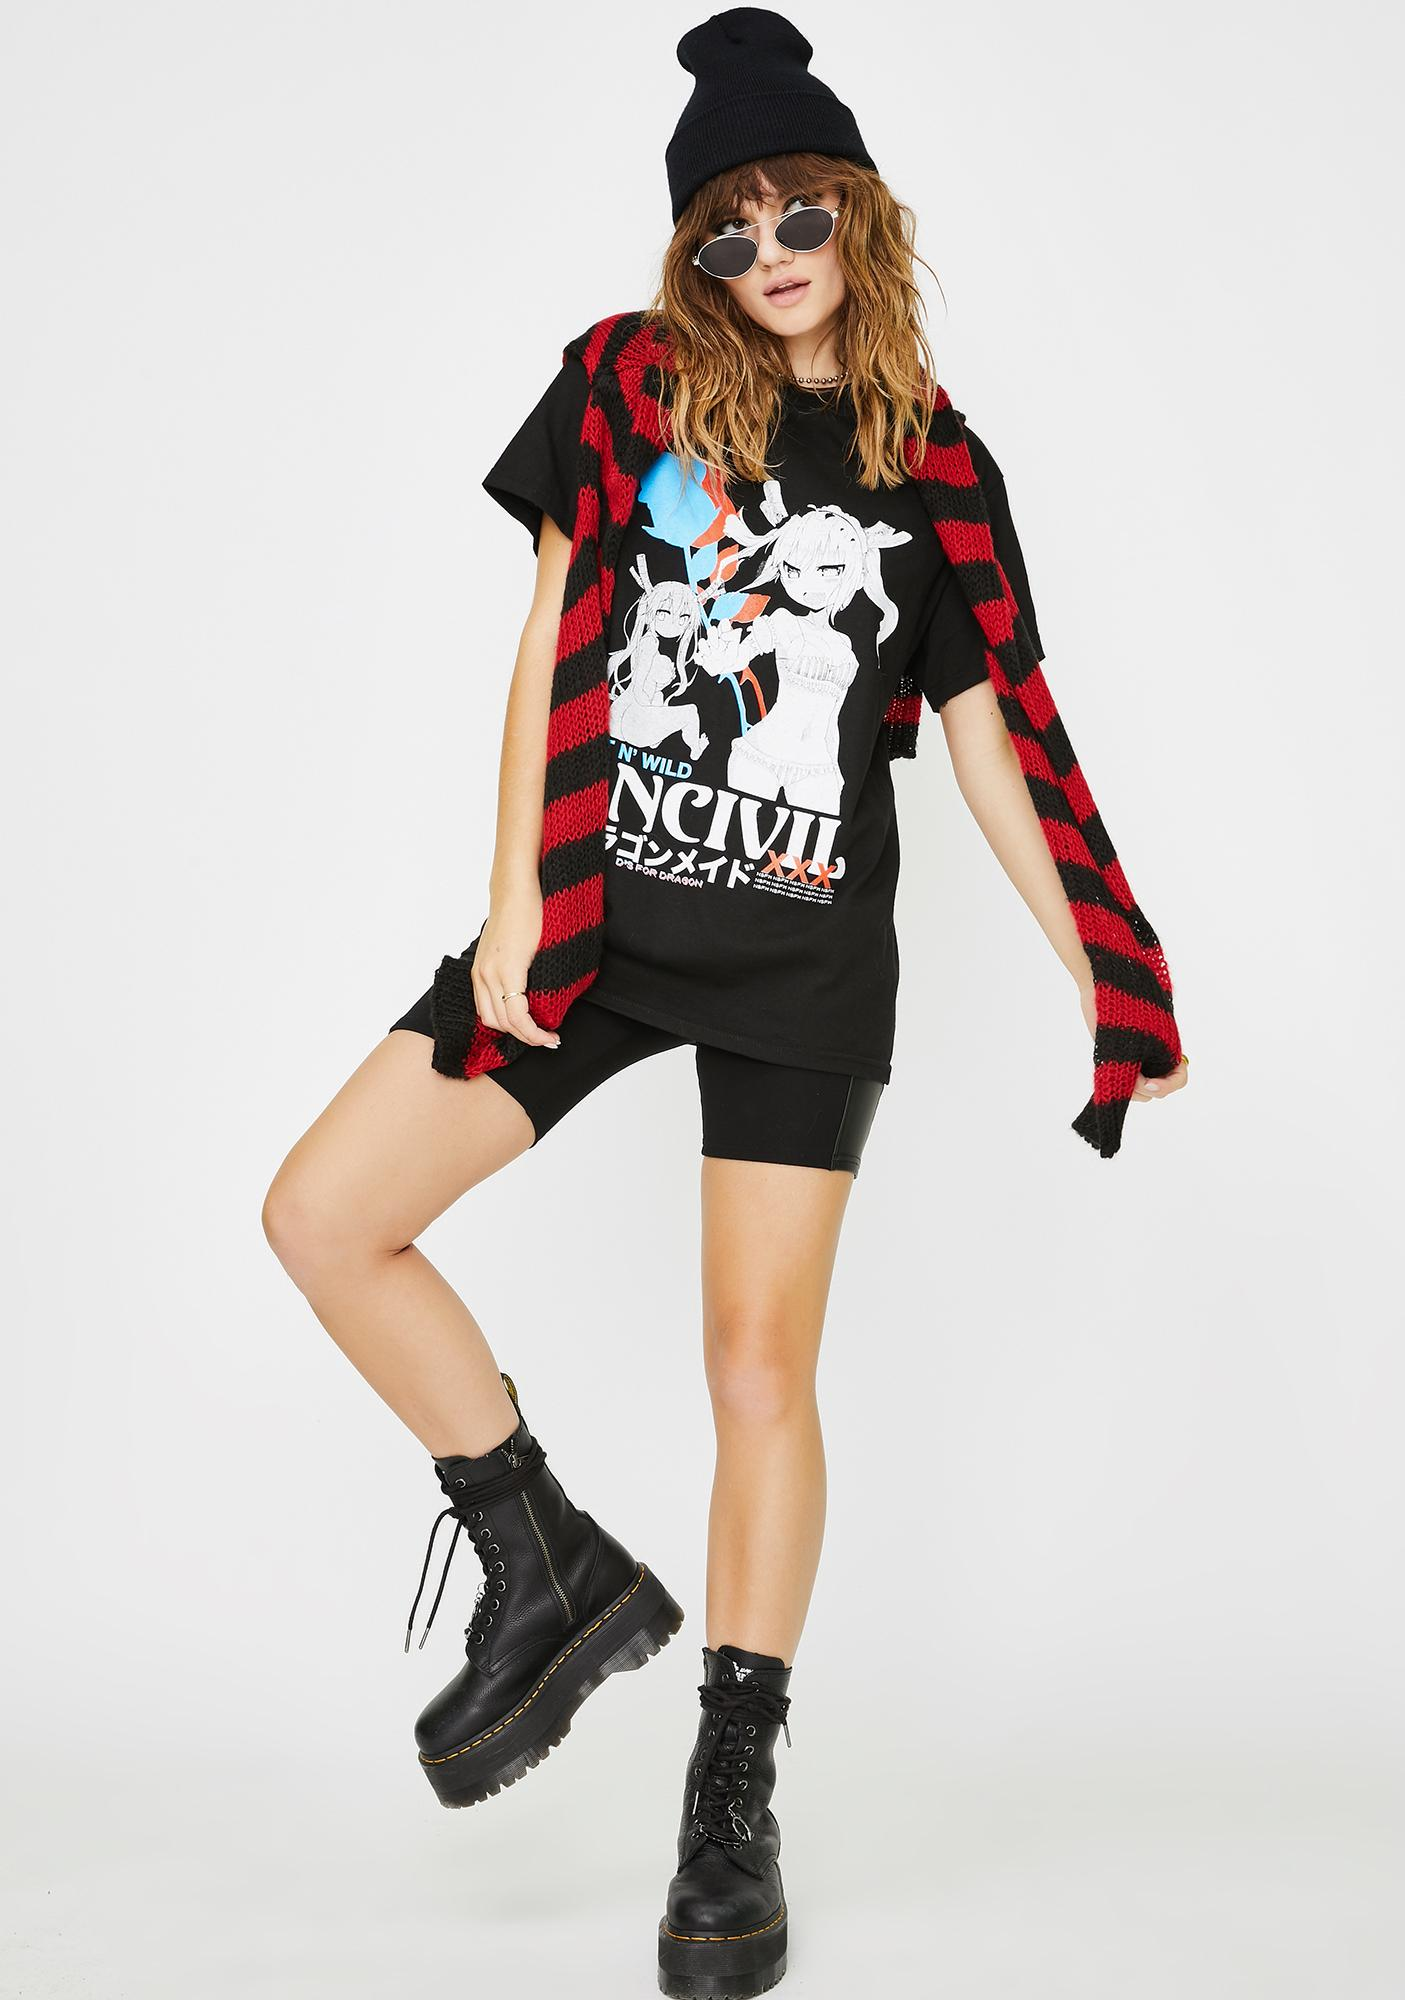 UNCIVIL XXX  Wet N' Wild Graphic Tee